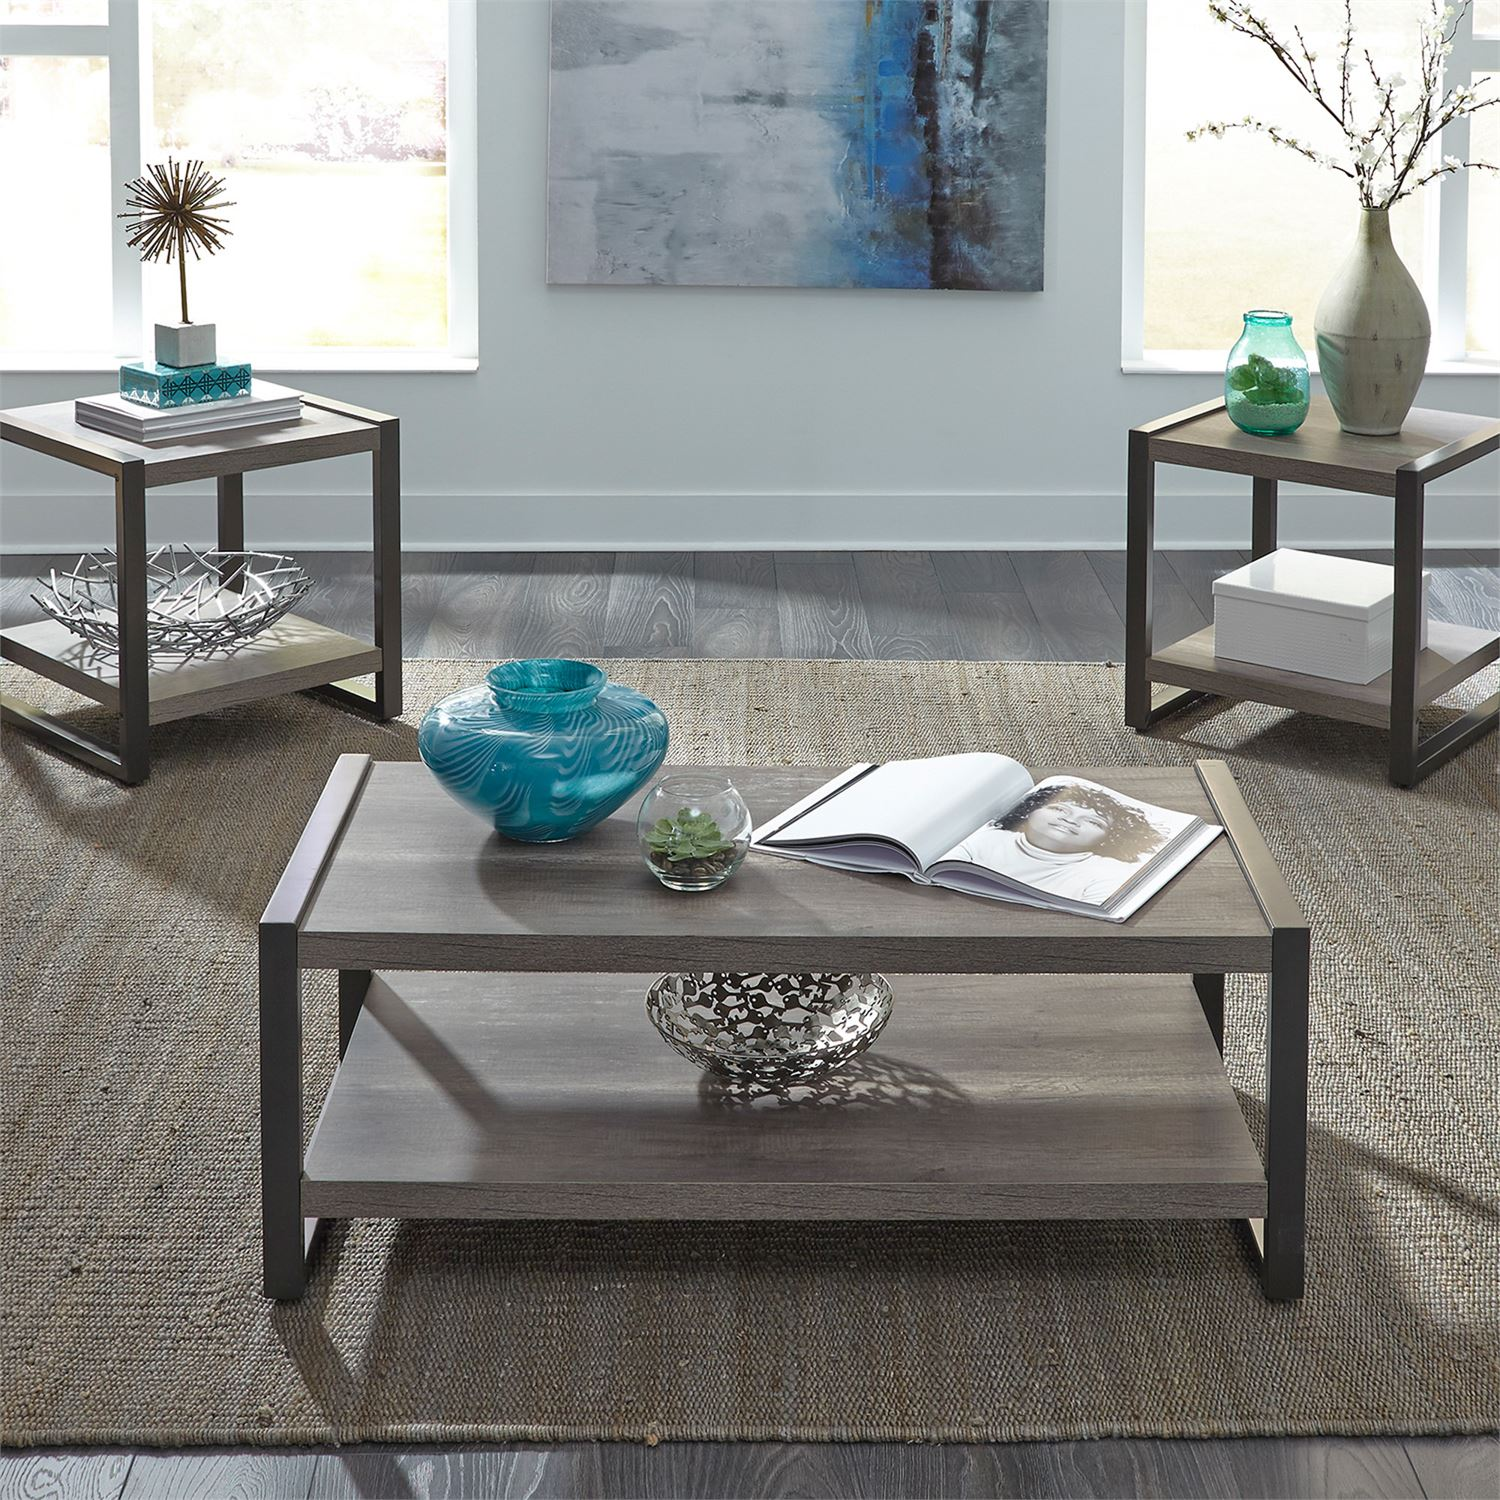 Three piece living room table set in a grey distressed coastal style